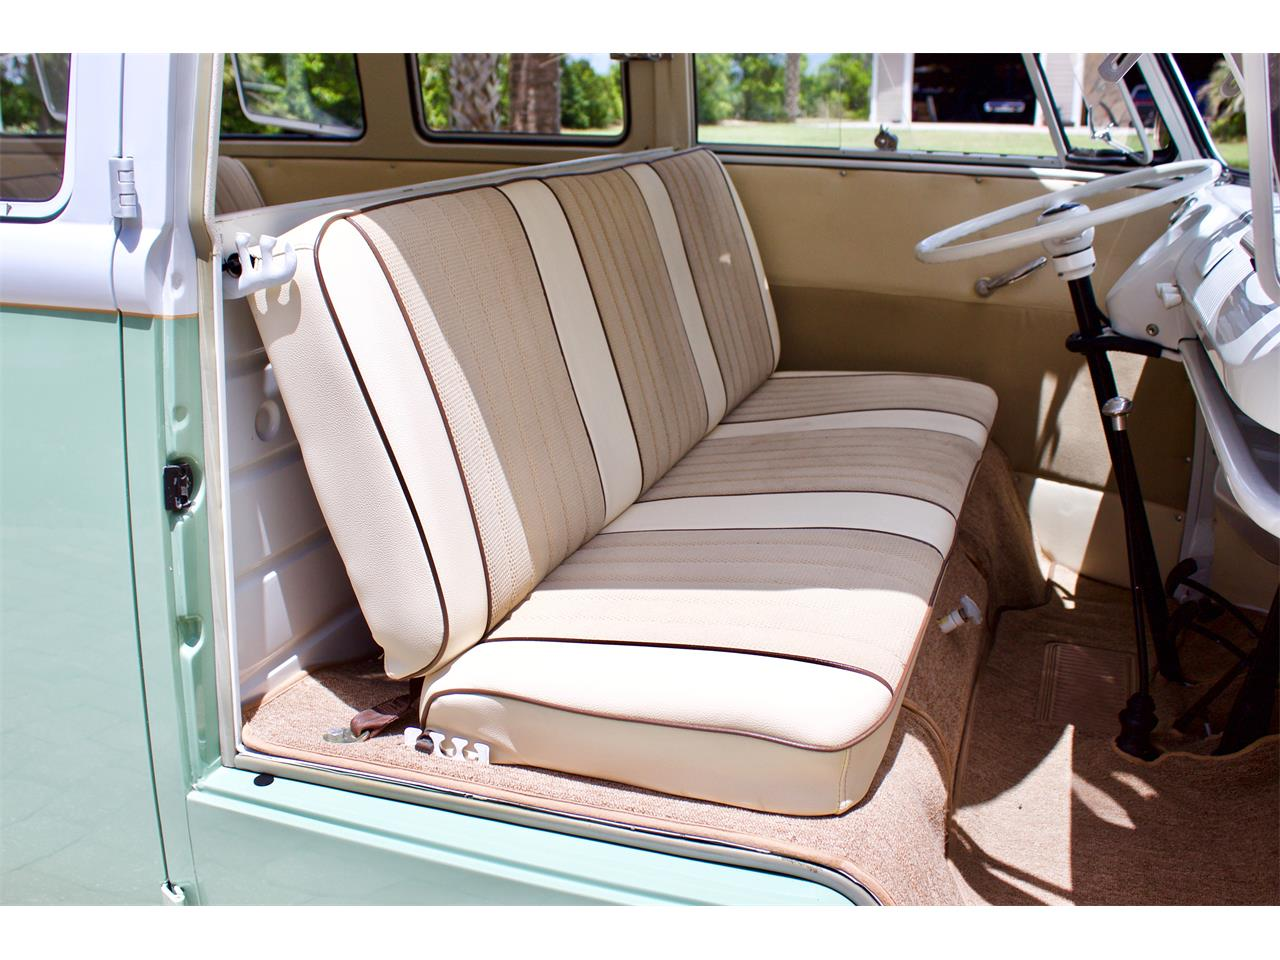 Large Picture of 1962 Volkswagen Bus - $59,950.00 - Q2DH